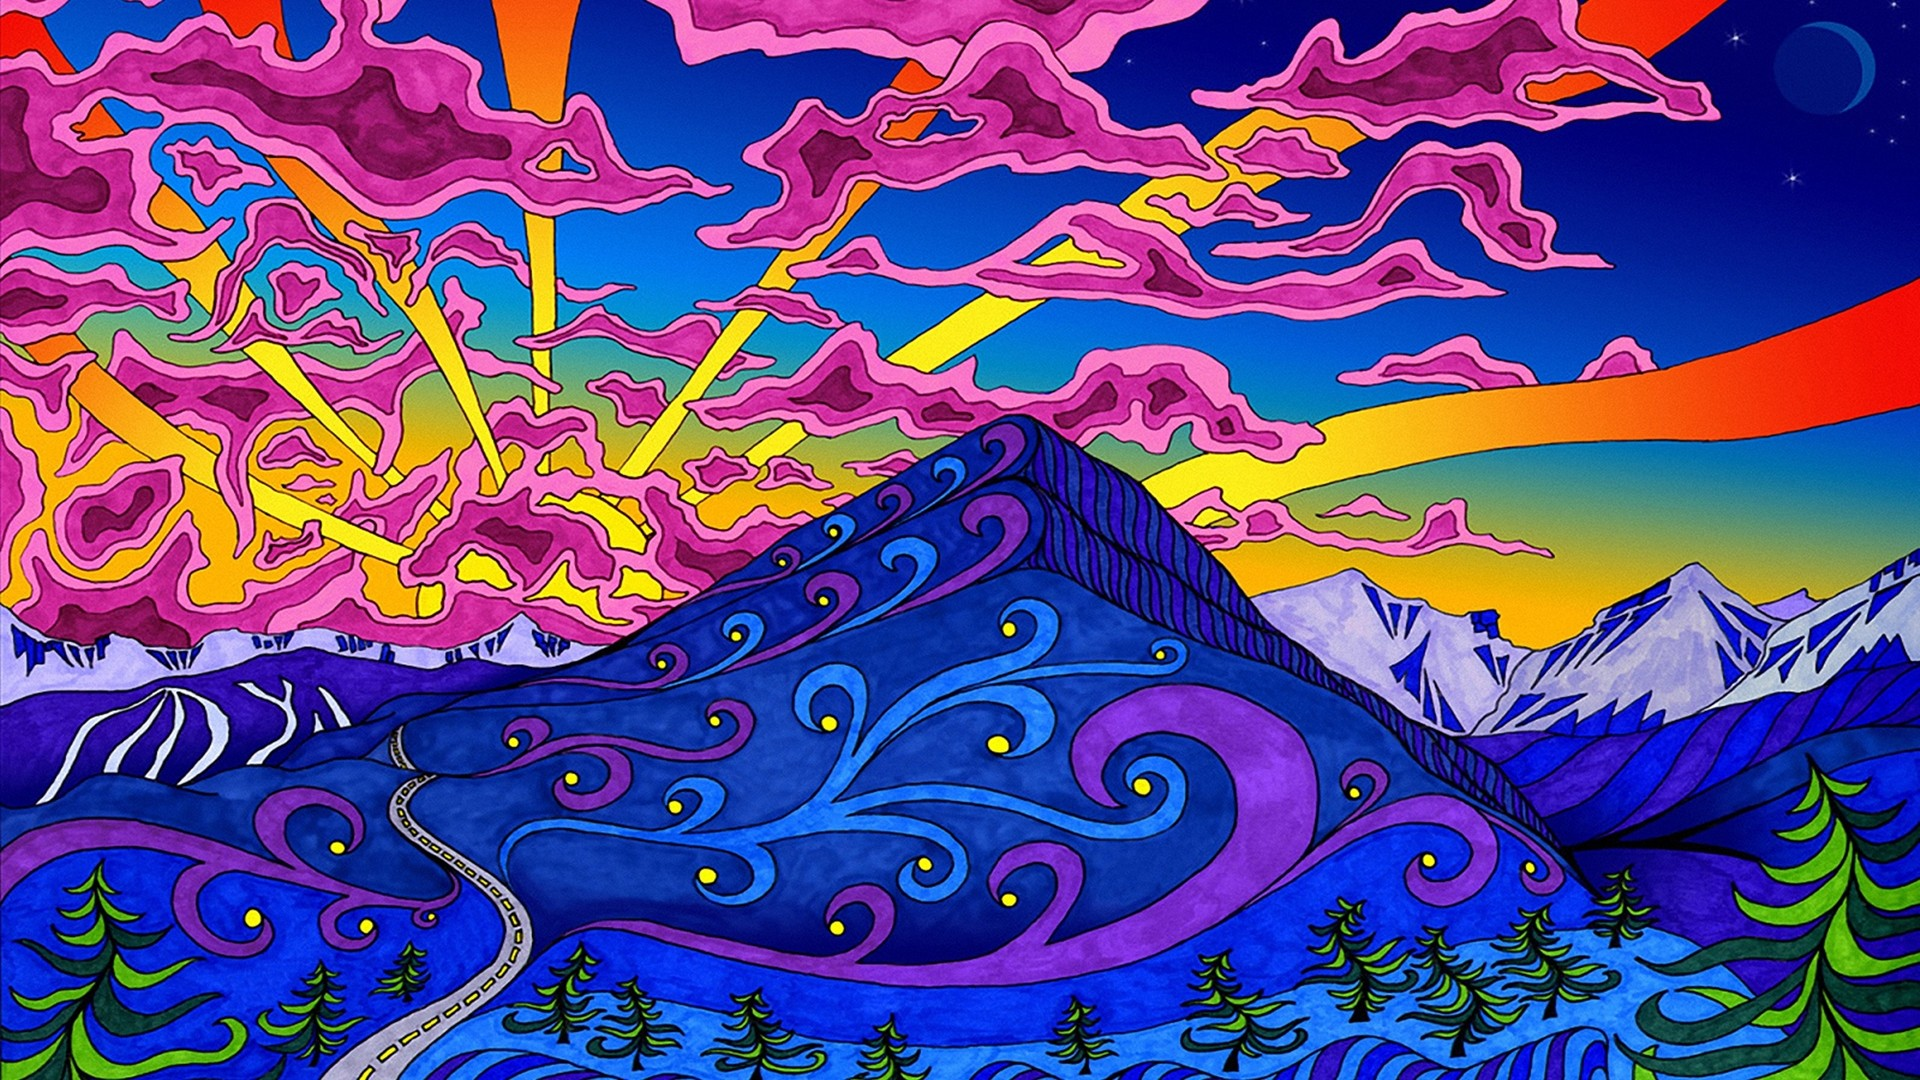 Mountains landscapes psychedelic artwork colors wallpaper 1920x1080 1920x1080